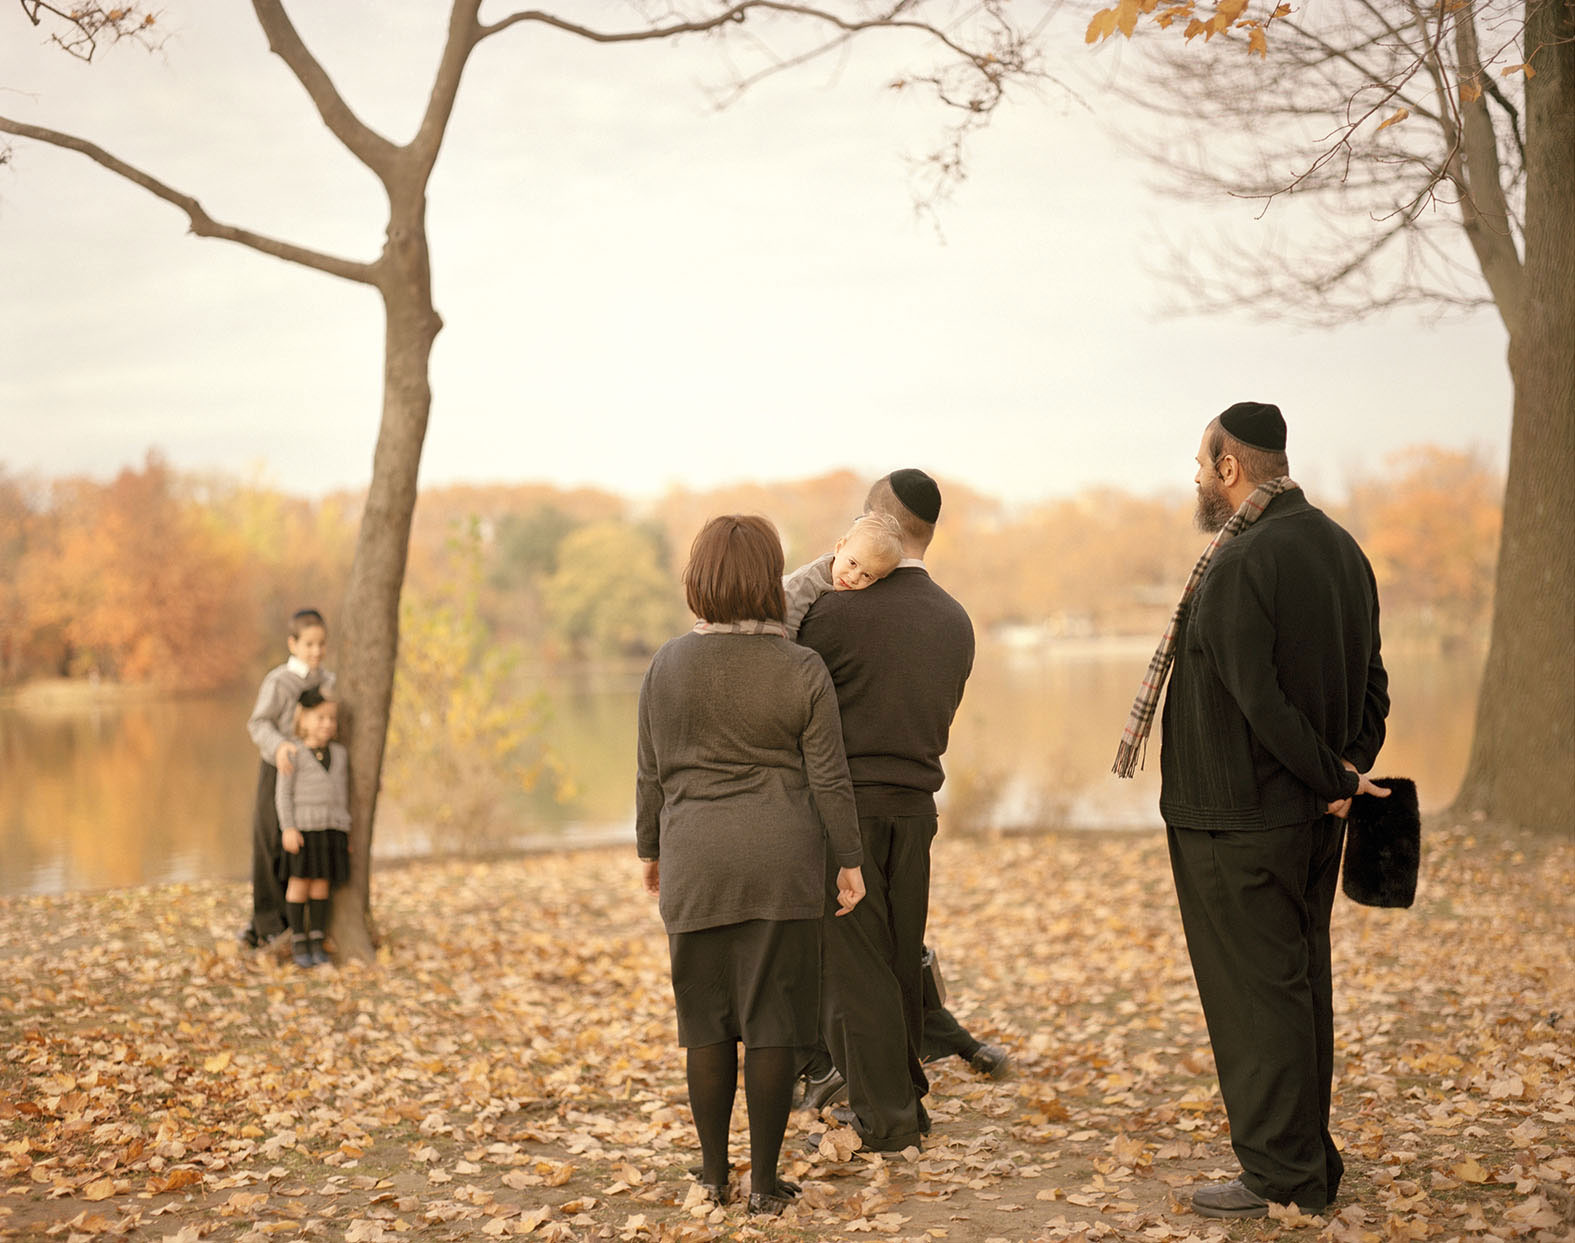 a Hasidic family stands, dressed nicely, on an autumn day, two children posed by a tree, three adults, one carrying a baby, looking on